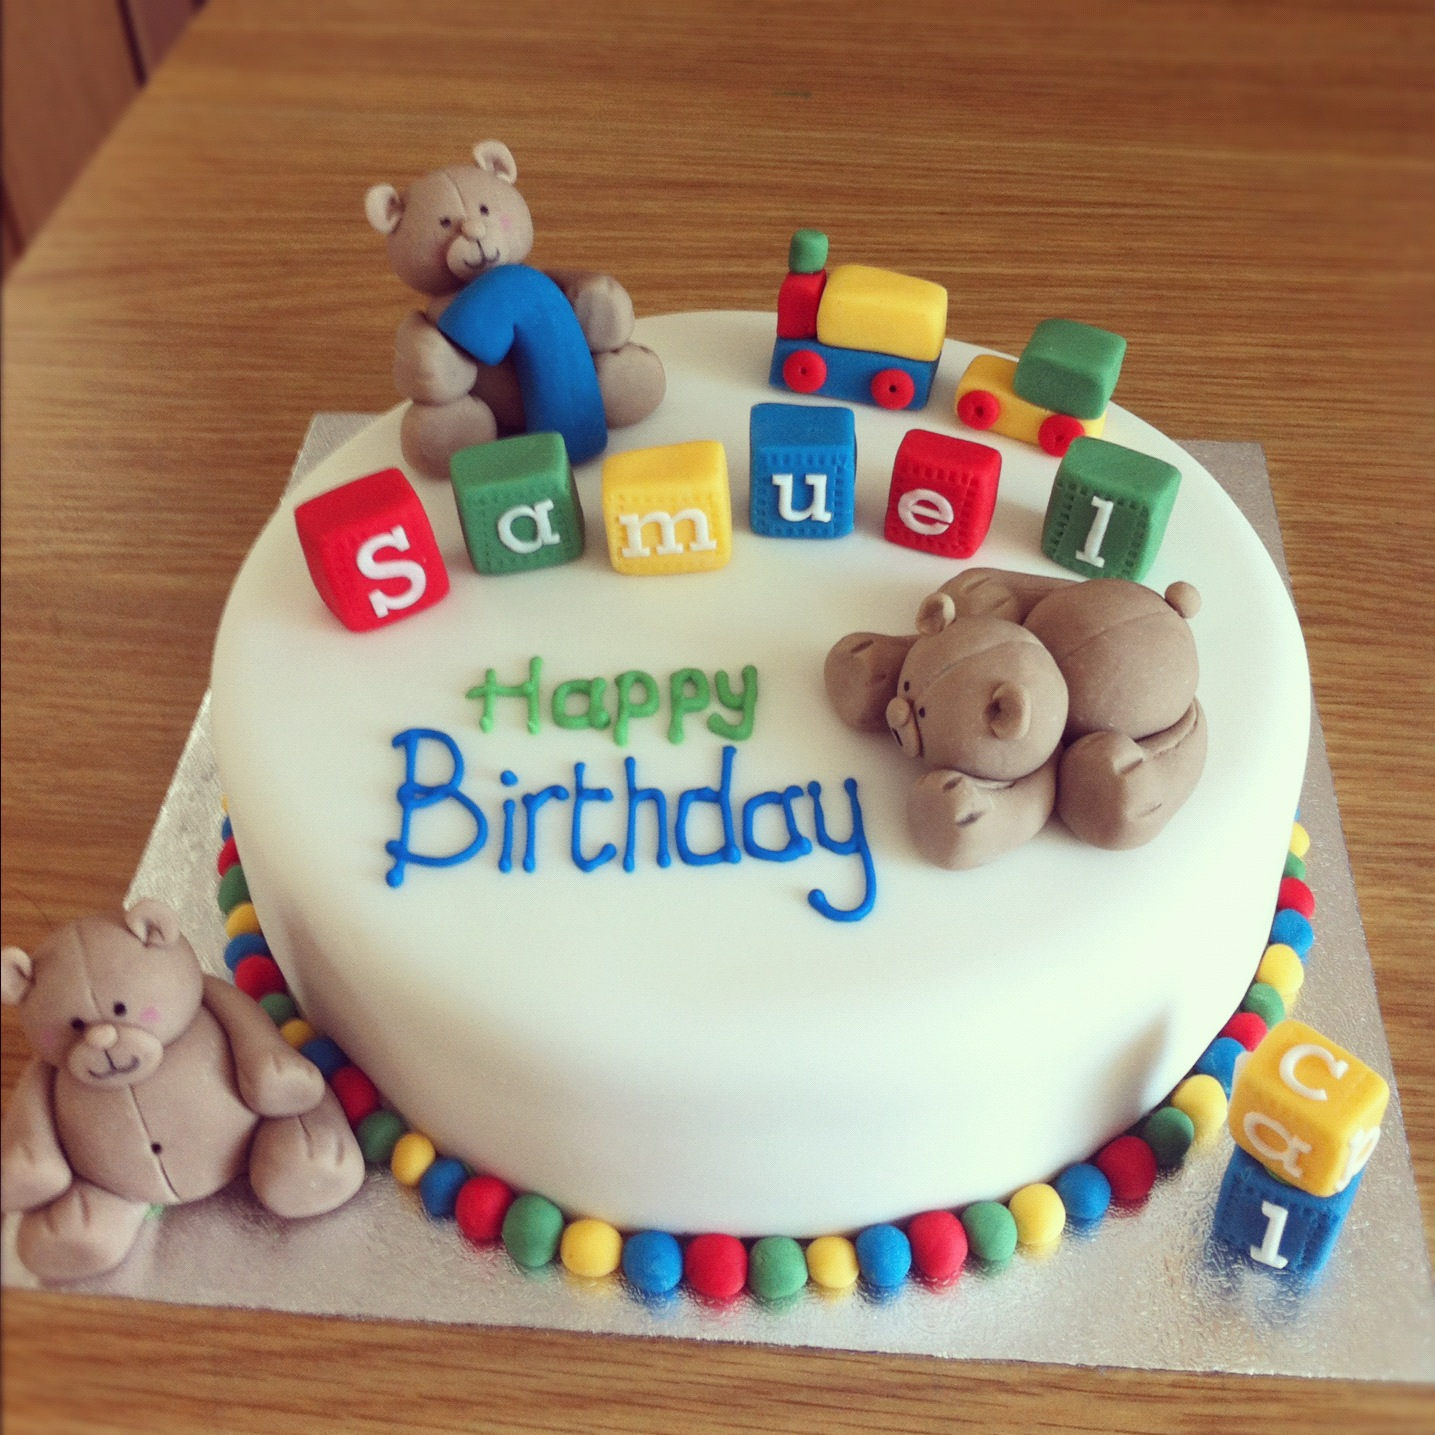 Posts With 1st Birthday Cake Tag